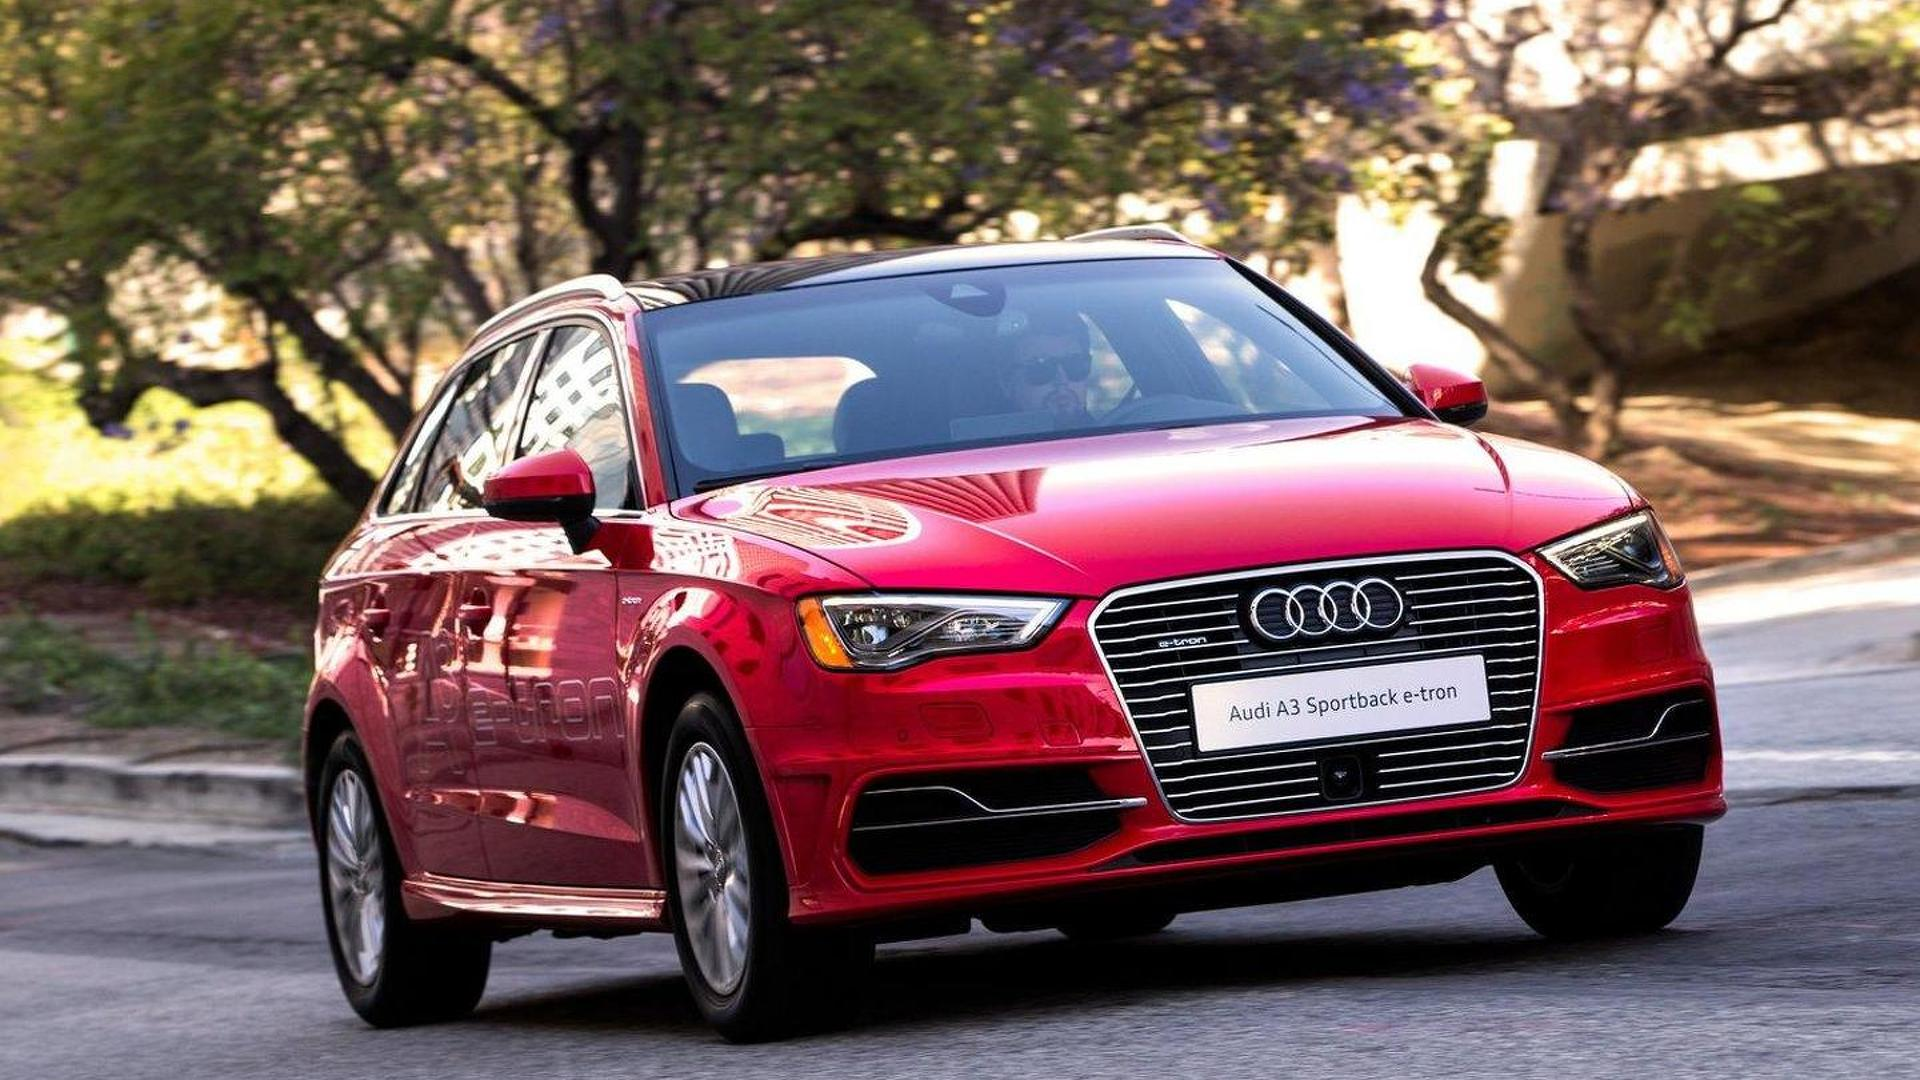 2016 Audi A3 Sportback e-tron priced from $37,900